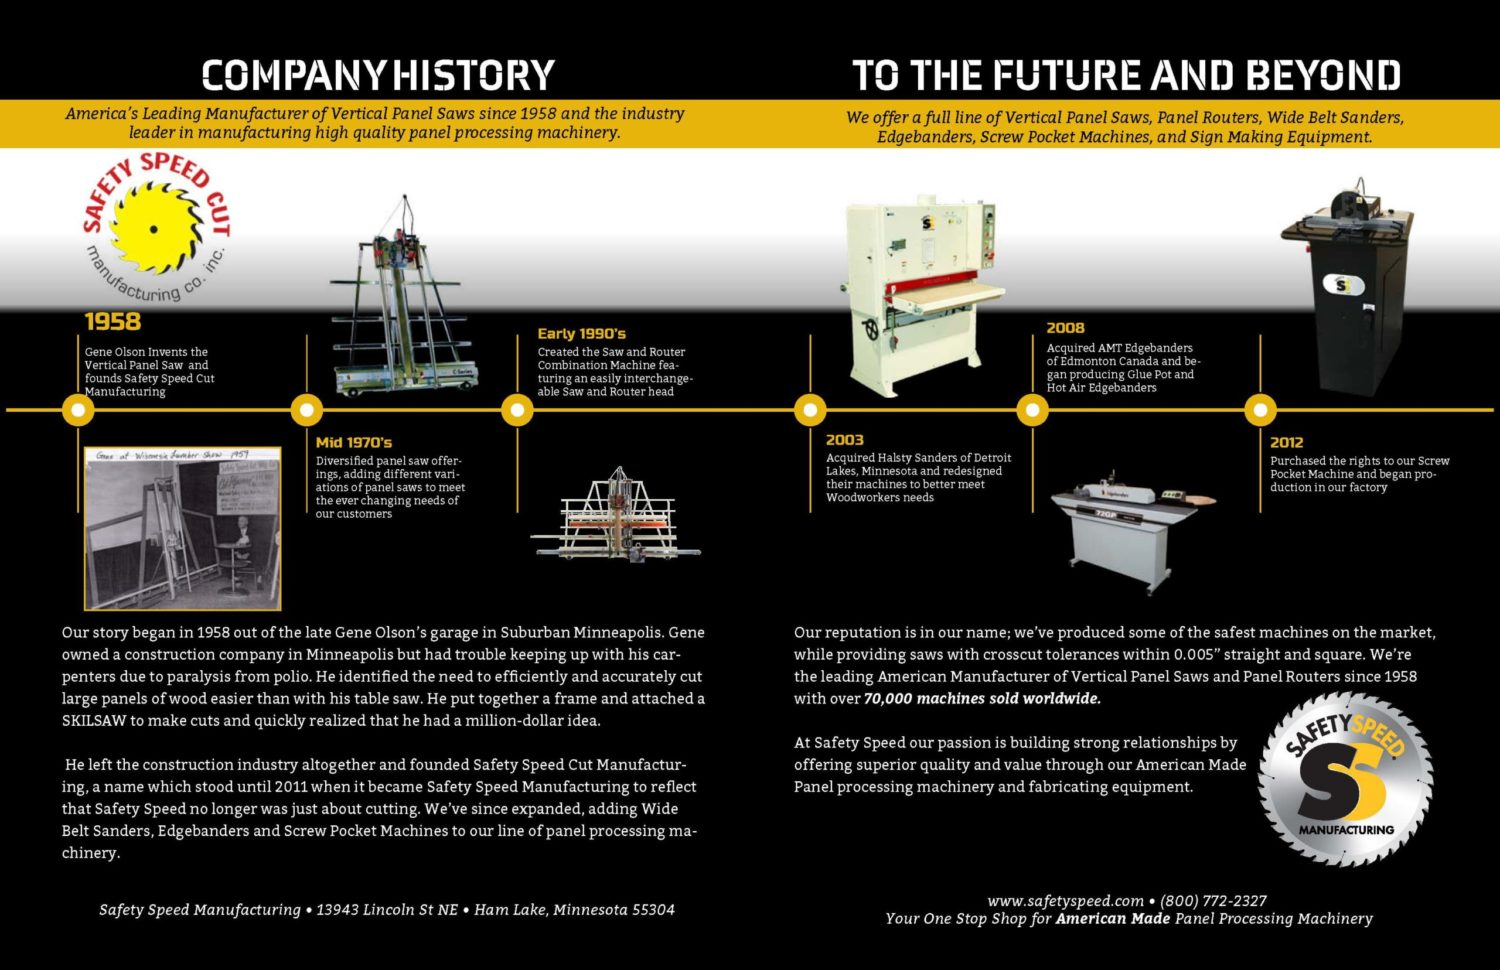 Woodworking machinery catalog page featuring company history by by Safety Speed Manufacturing